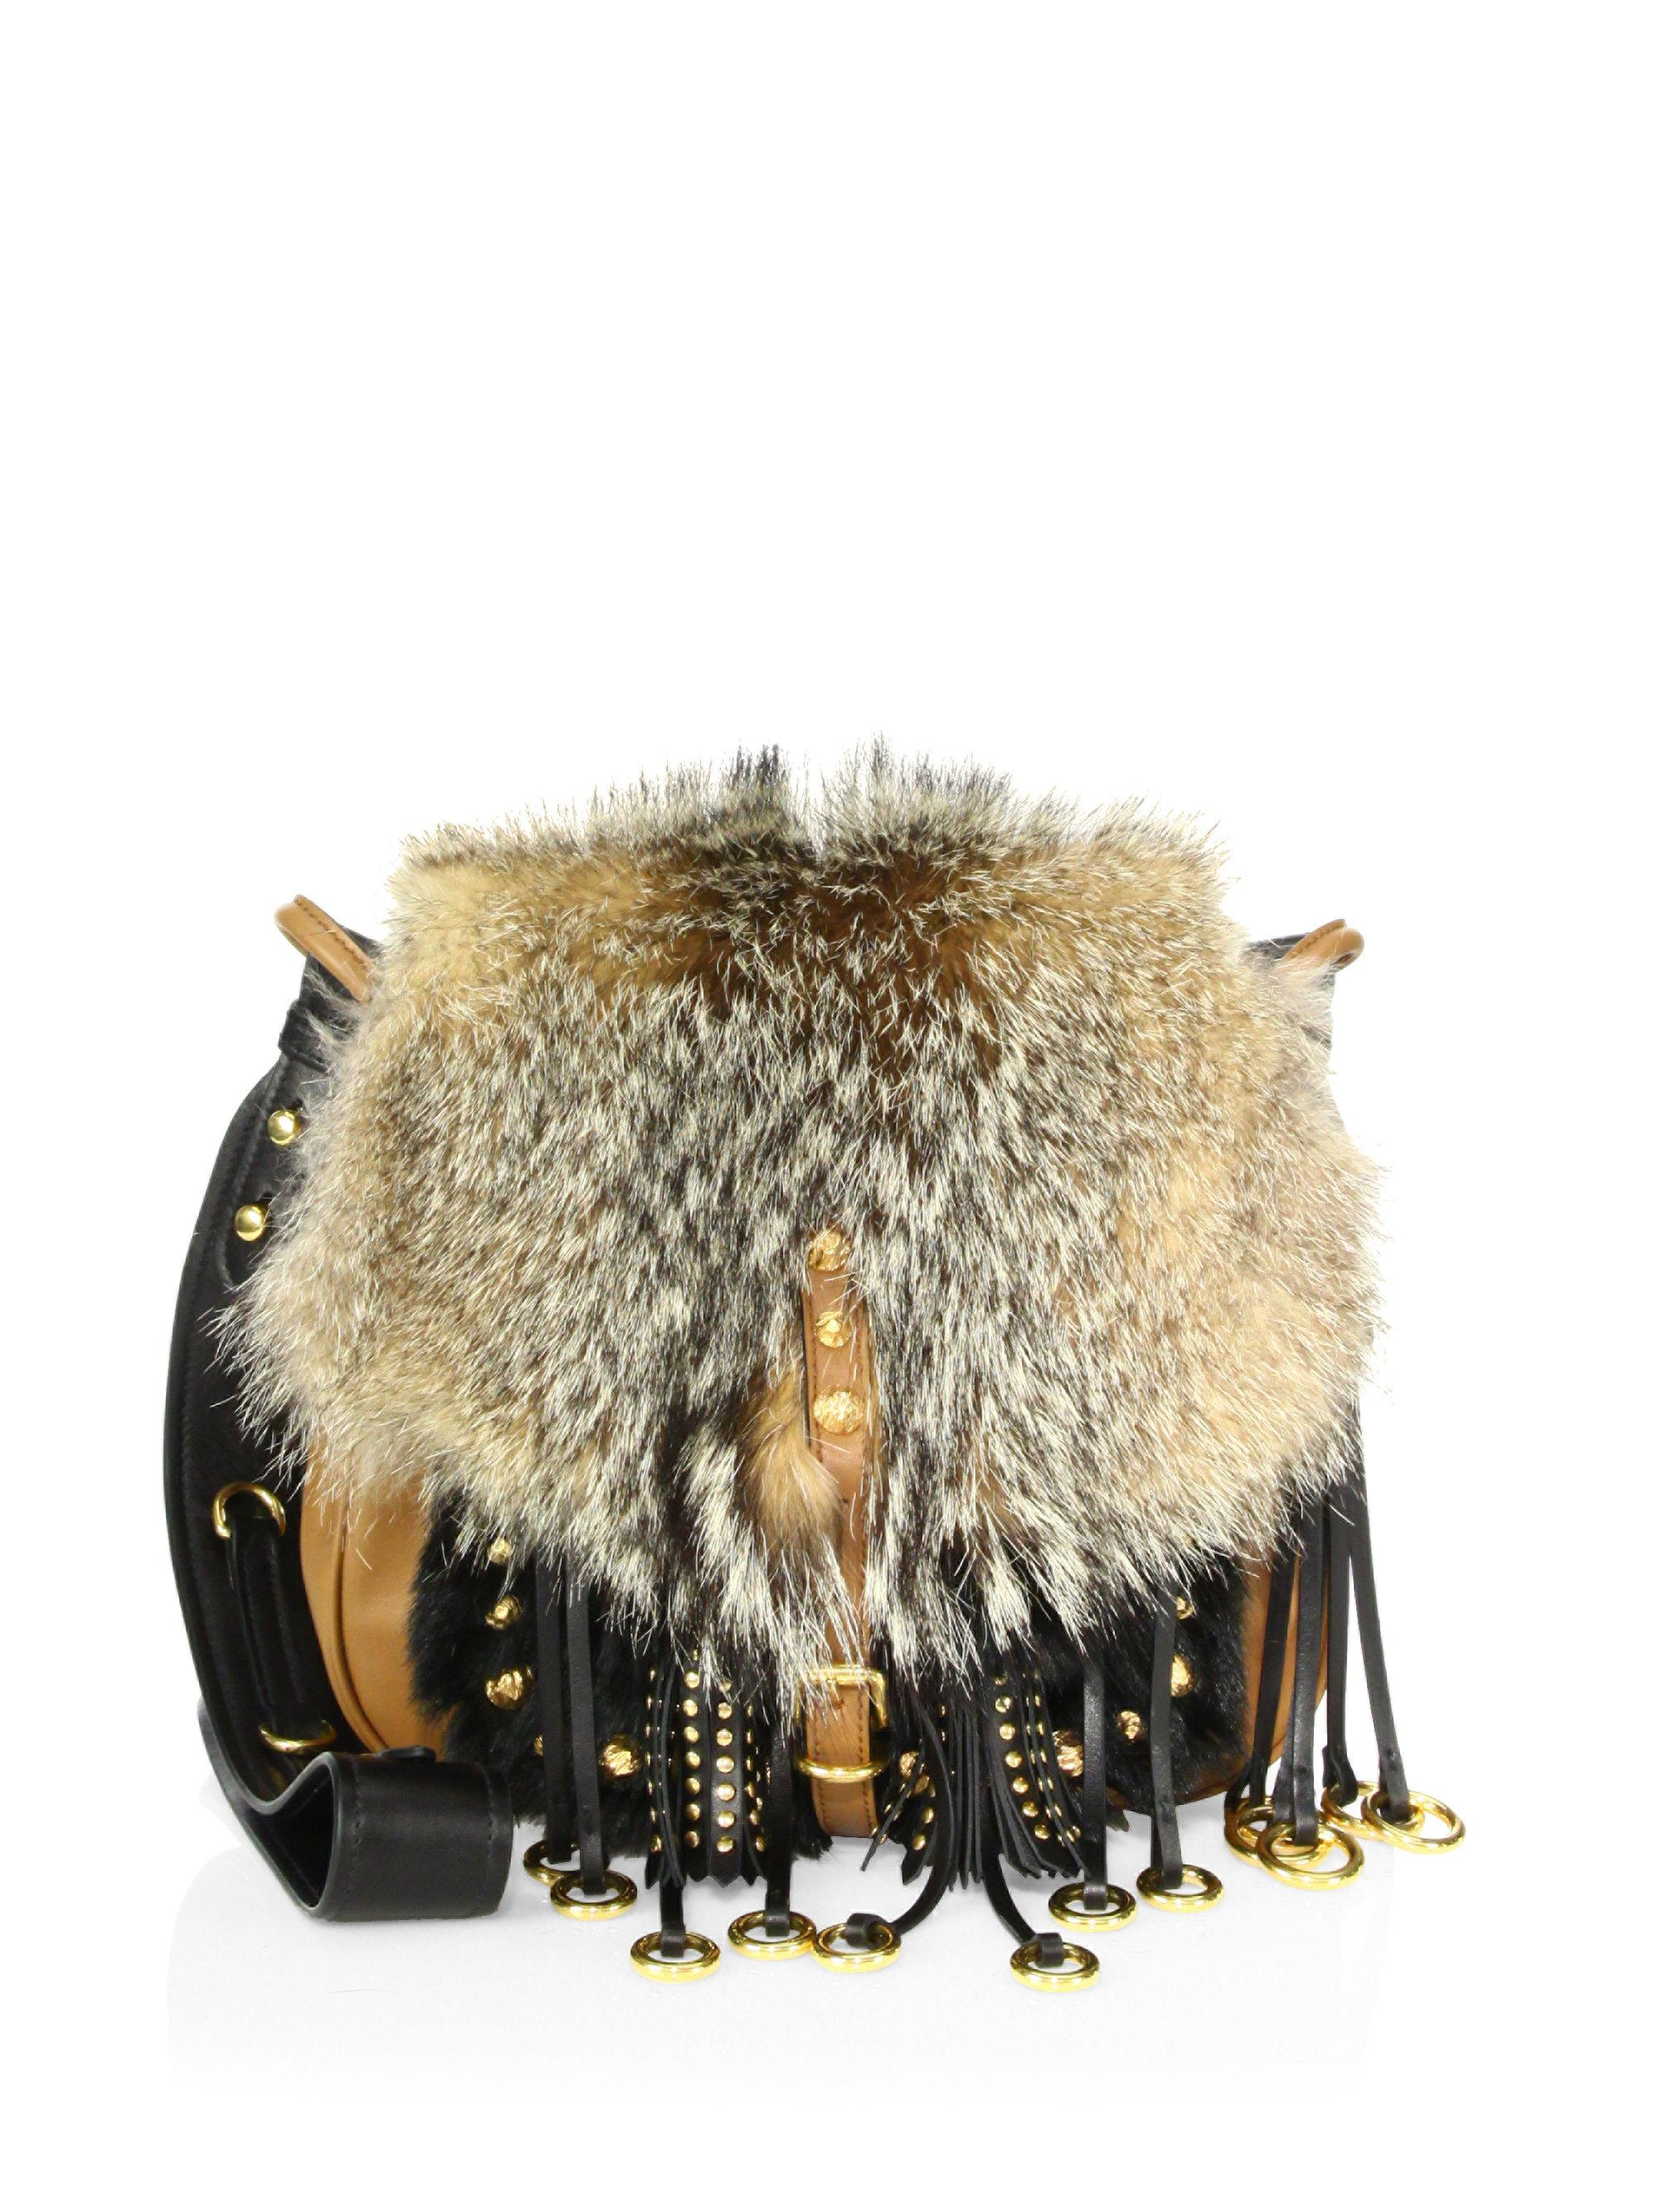 b0d522a8542e Prada Corsaire Fox Fur   Leather Messenger Bag in Natural - Lyst